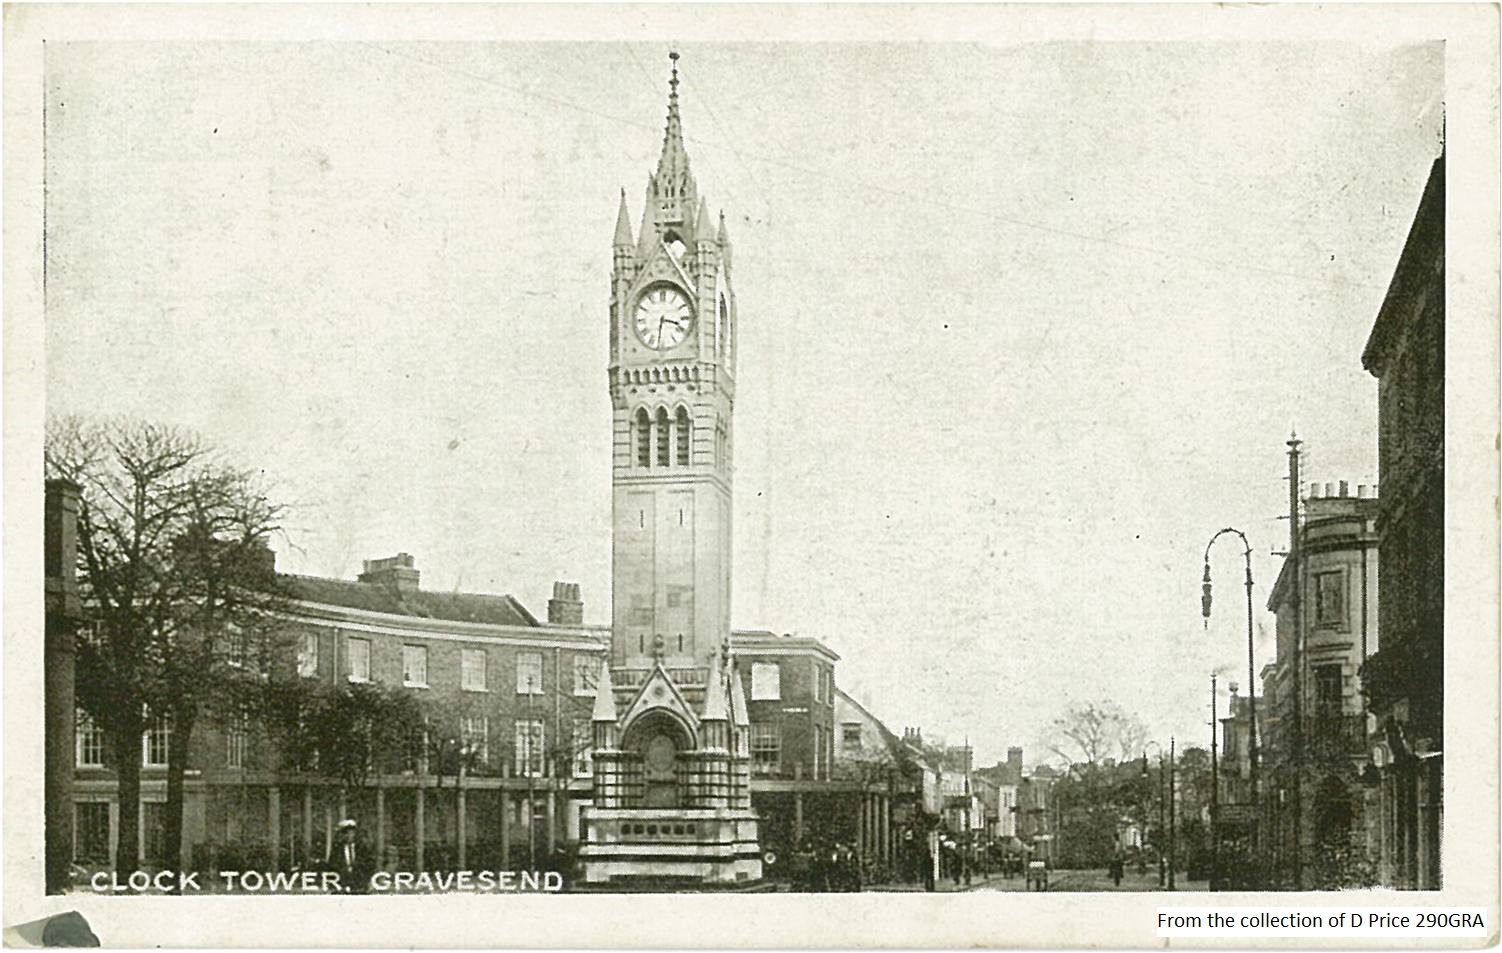 290gra-the-clock-tower-gravesend-front